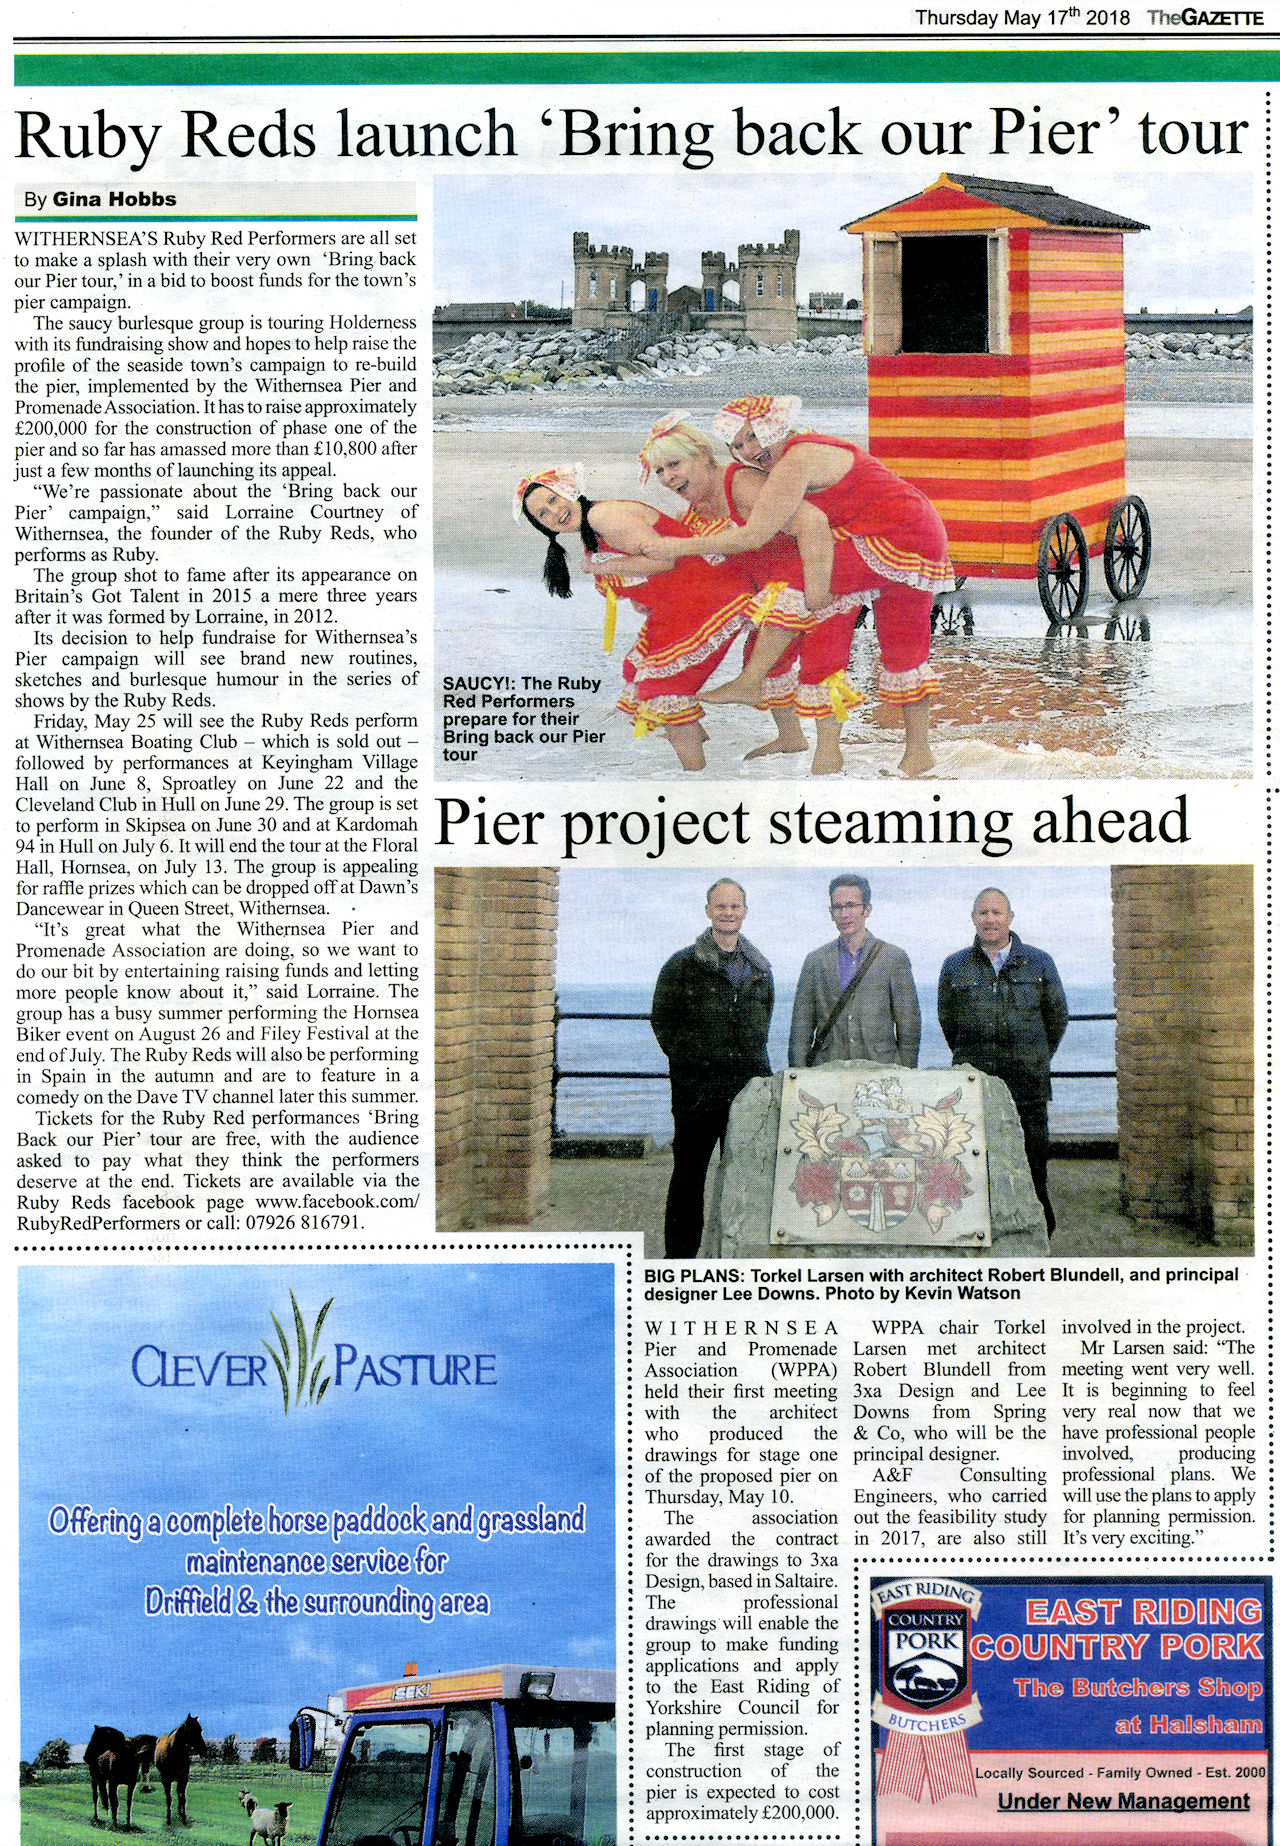 PressCoverage2018-05-17 Gazette